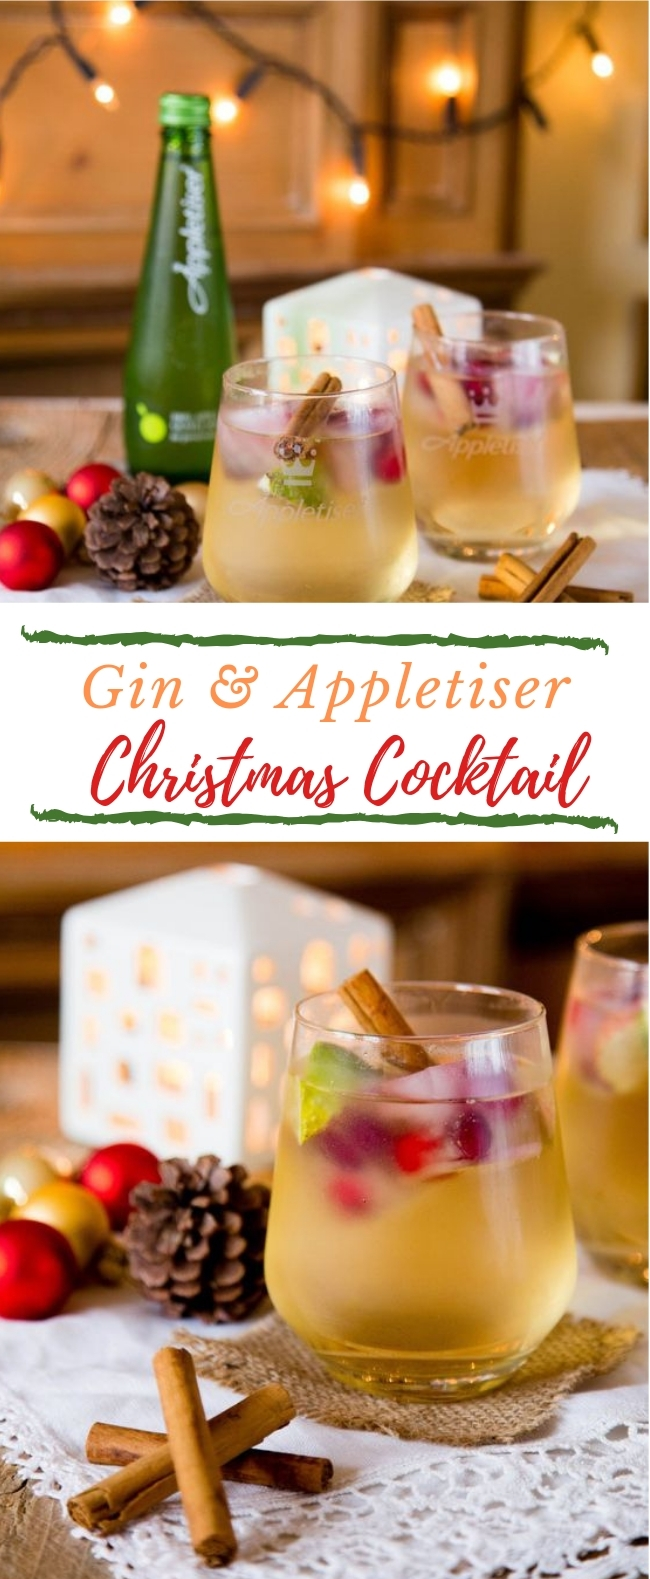 GIN & APPLETISER – A REFRESHING CHRISTMAS COCKTAIL #Drink #Cocktail